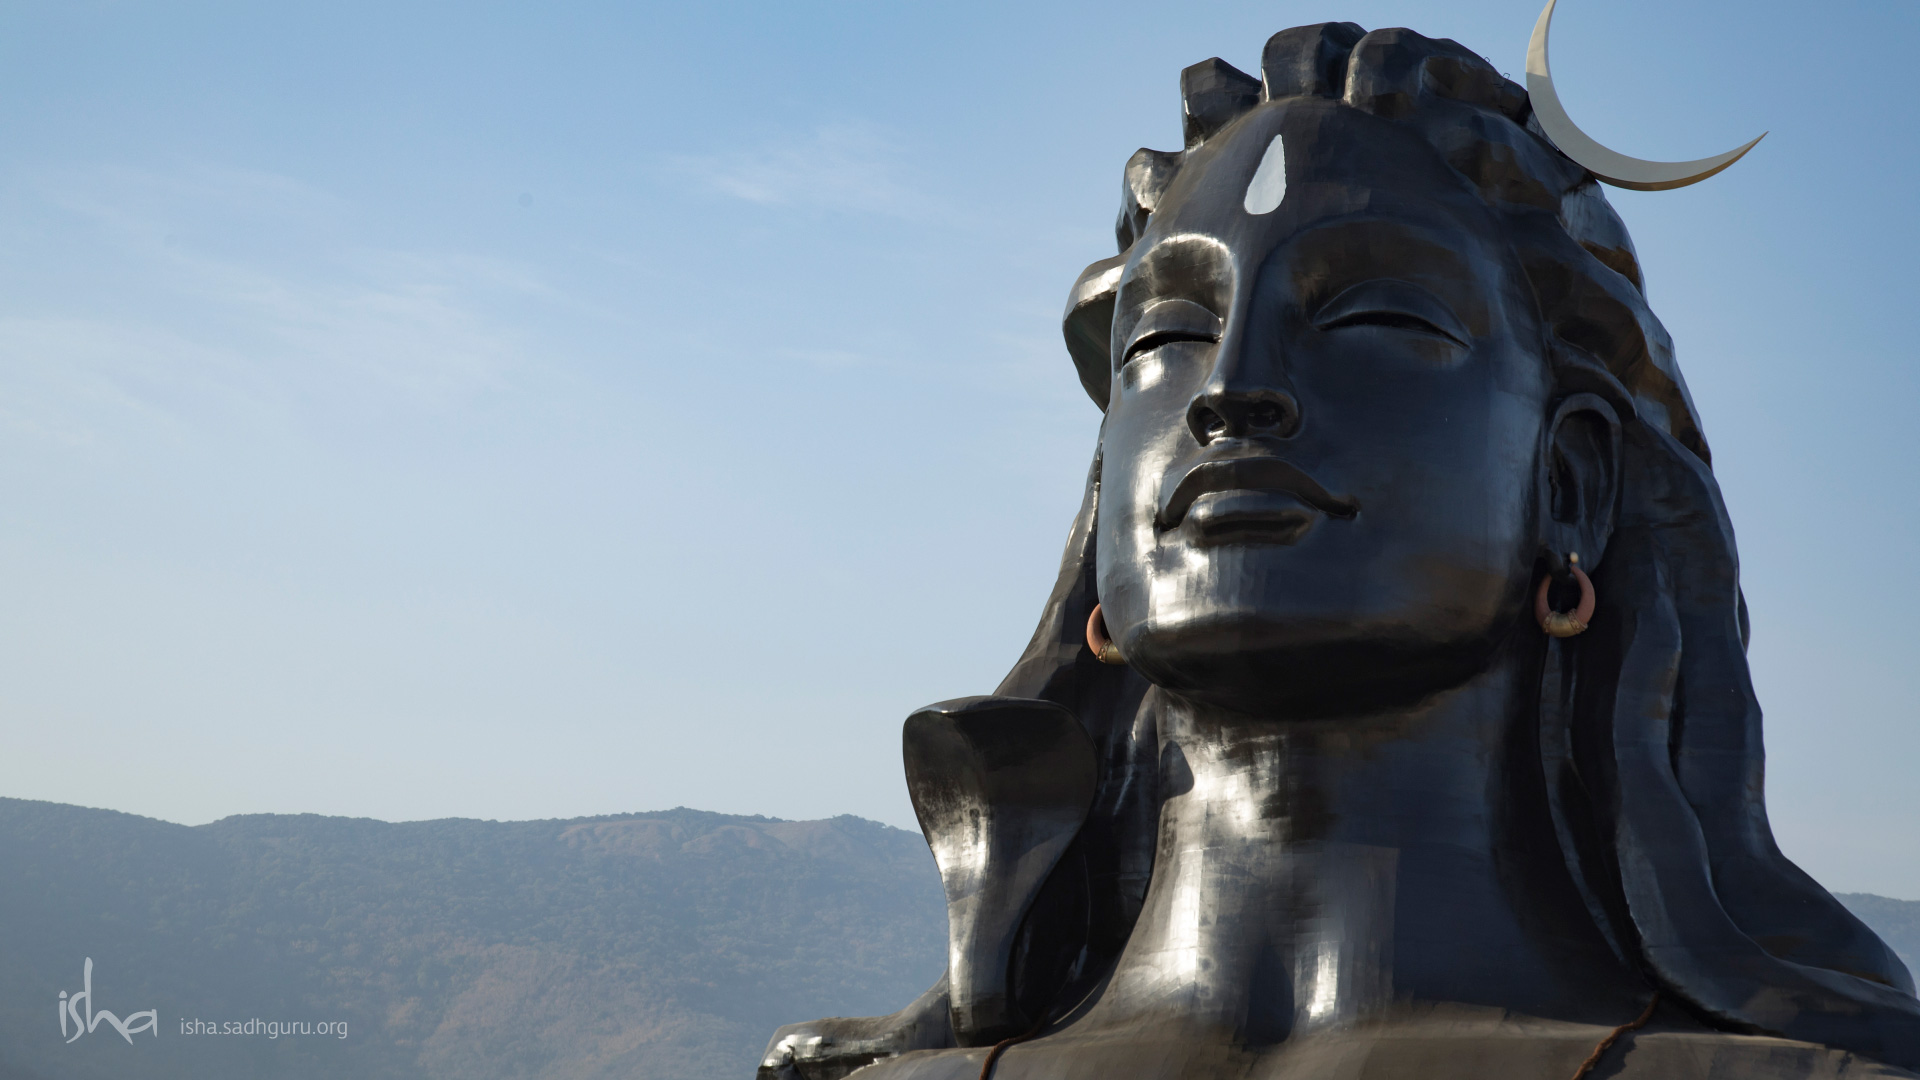 Shiva Wallpapers - The Adiyogi with a clear sky HD